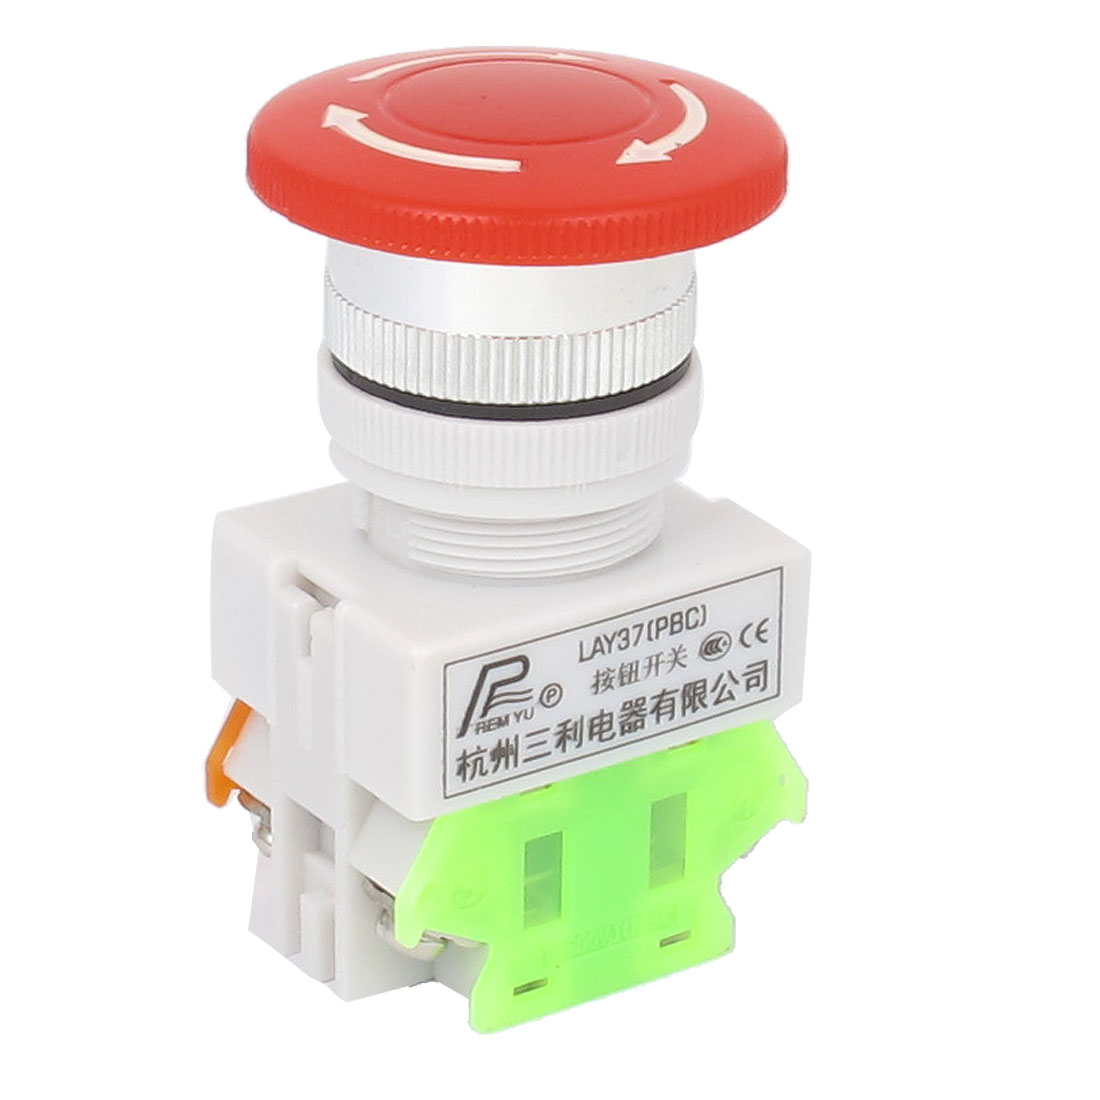 AC 600V 10A 1NO 1NC DPST Latching Turn Round Emergency Stop Push Button Switch